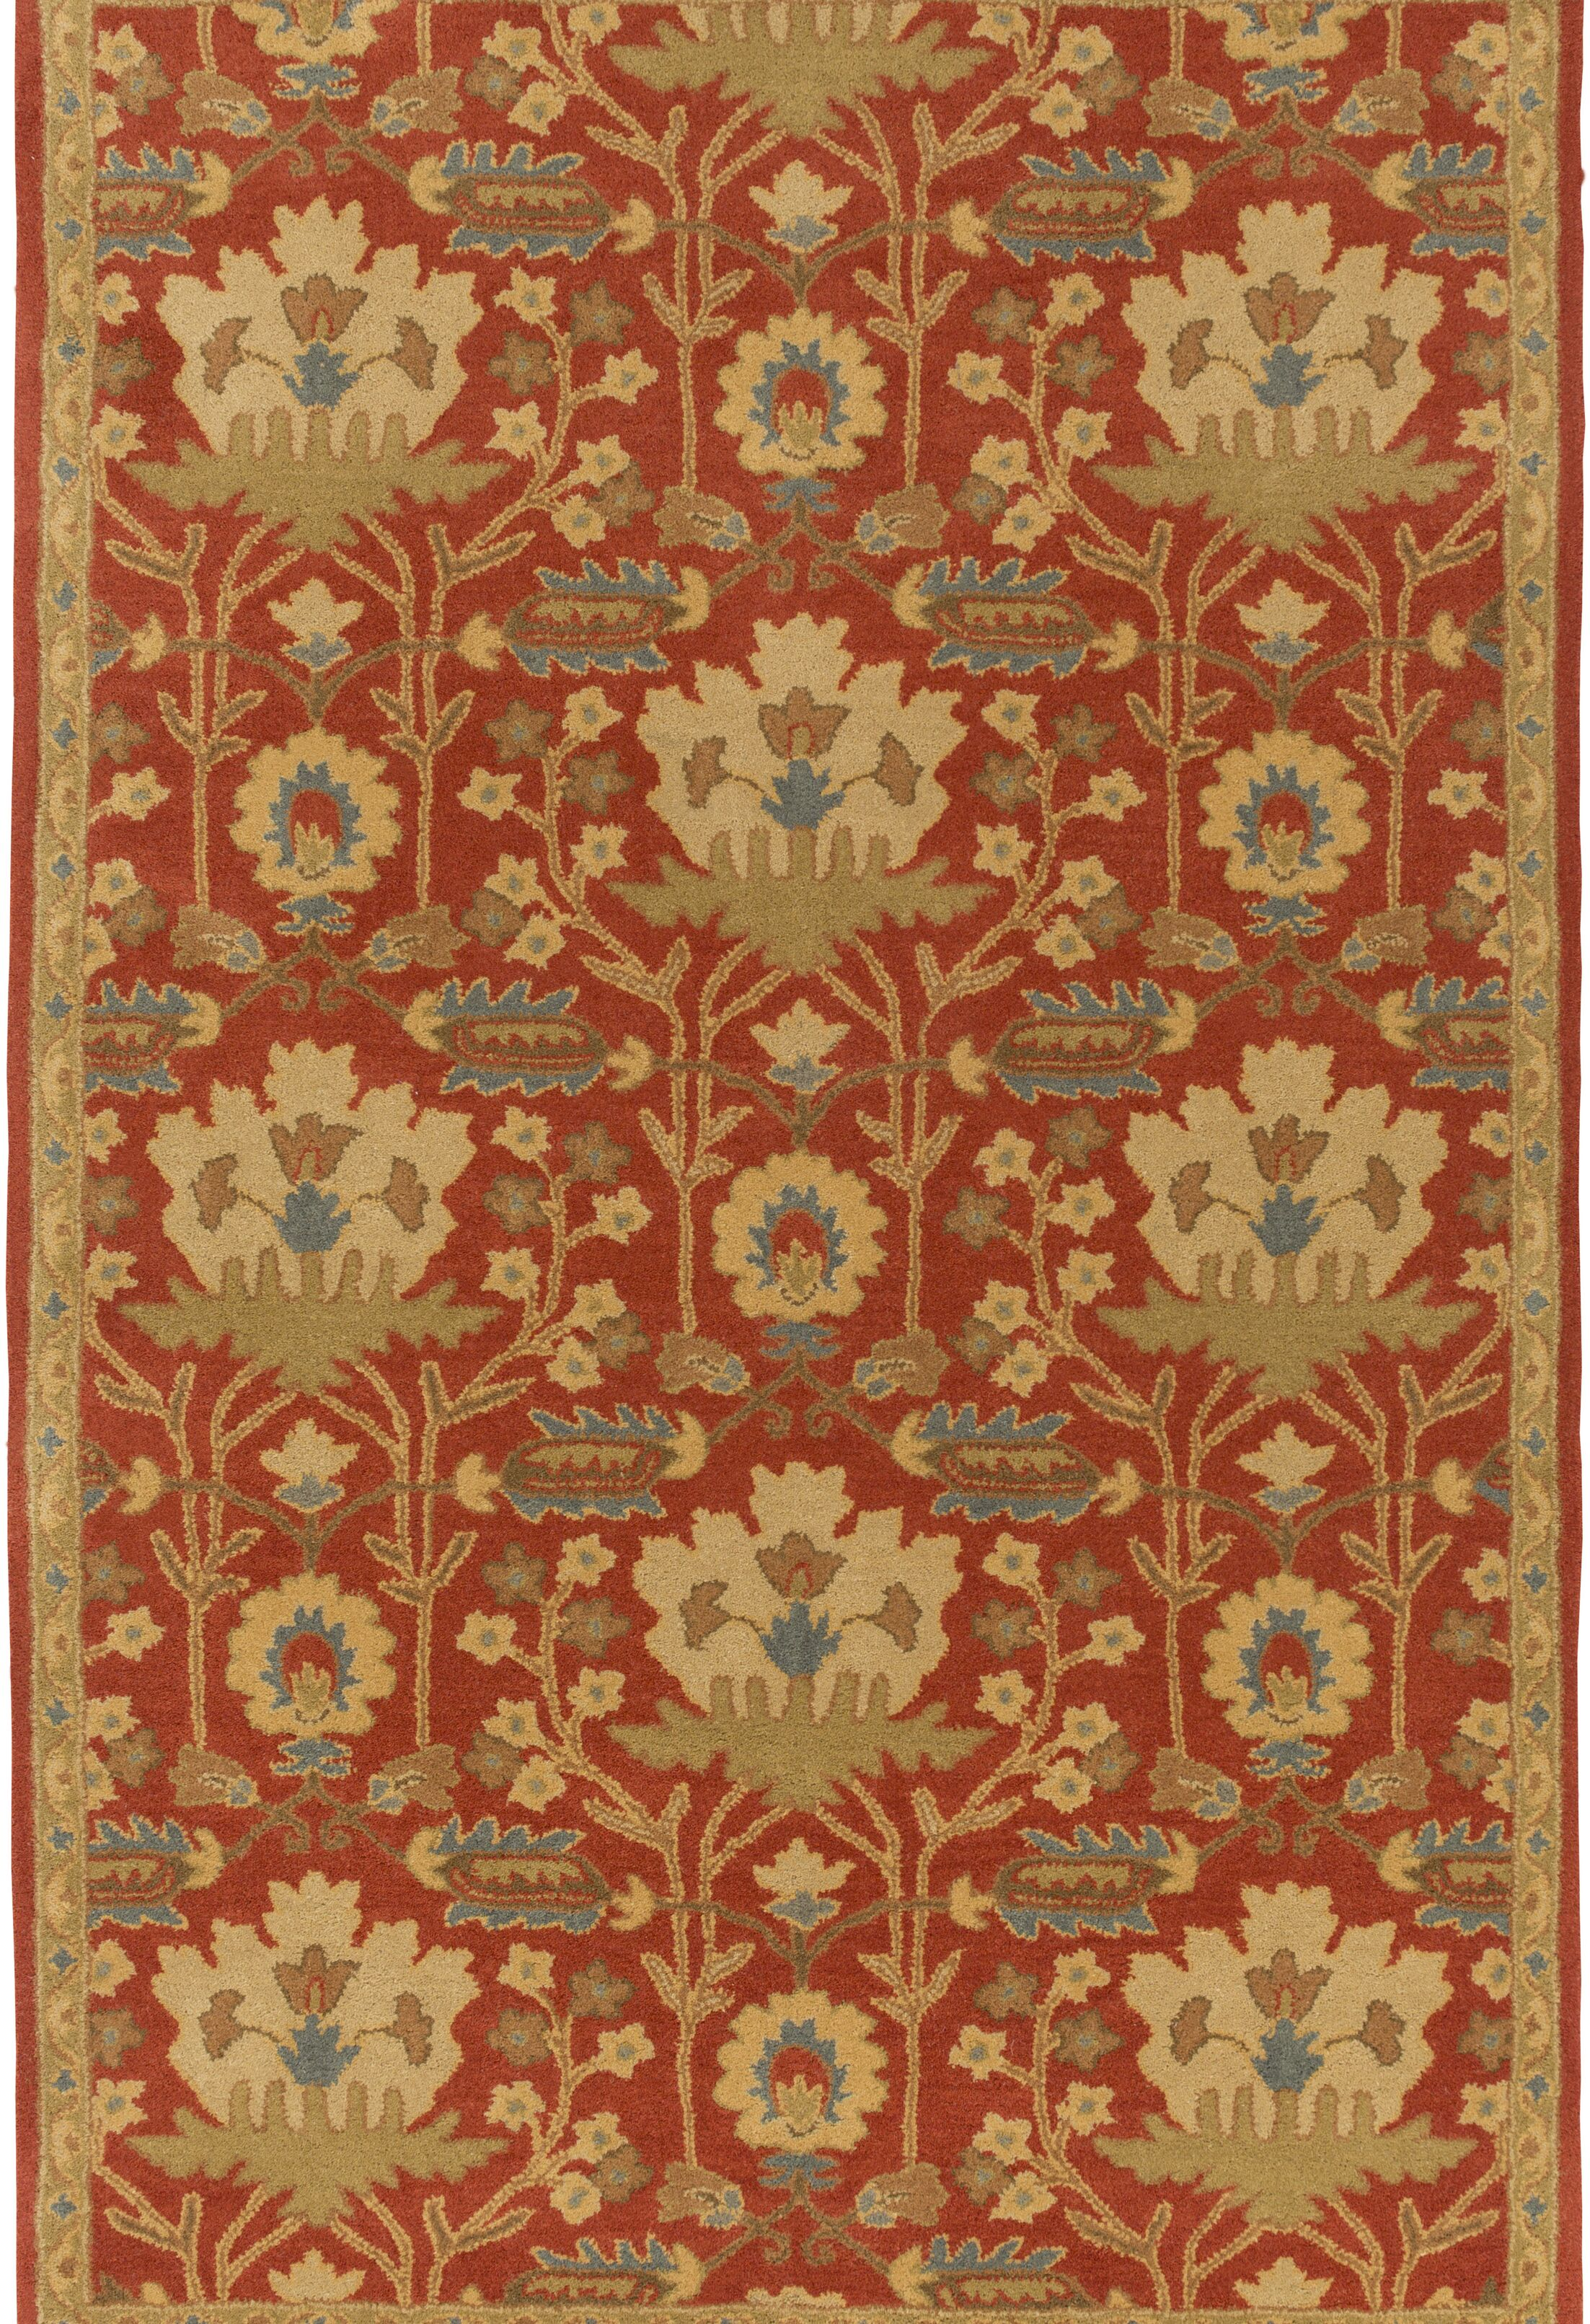 Kempinski Hand-Tufted Red/Beige Area Rug Rug Size: Rectangle 8' x 11'